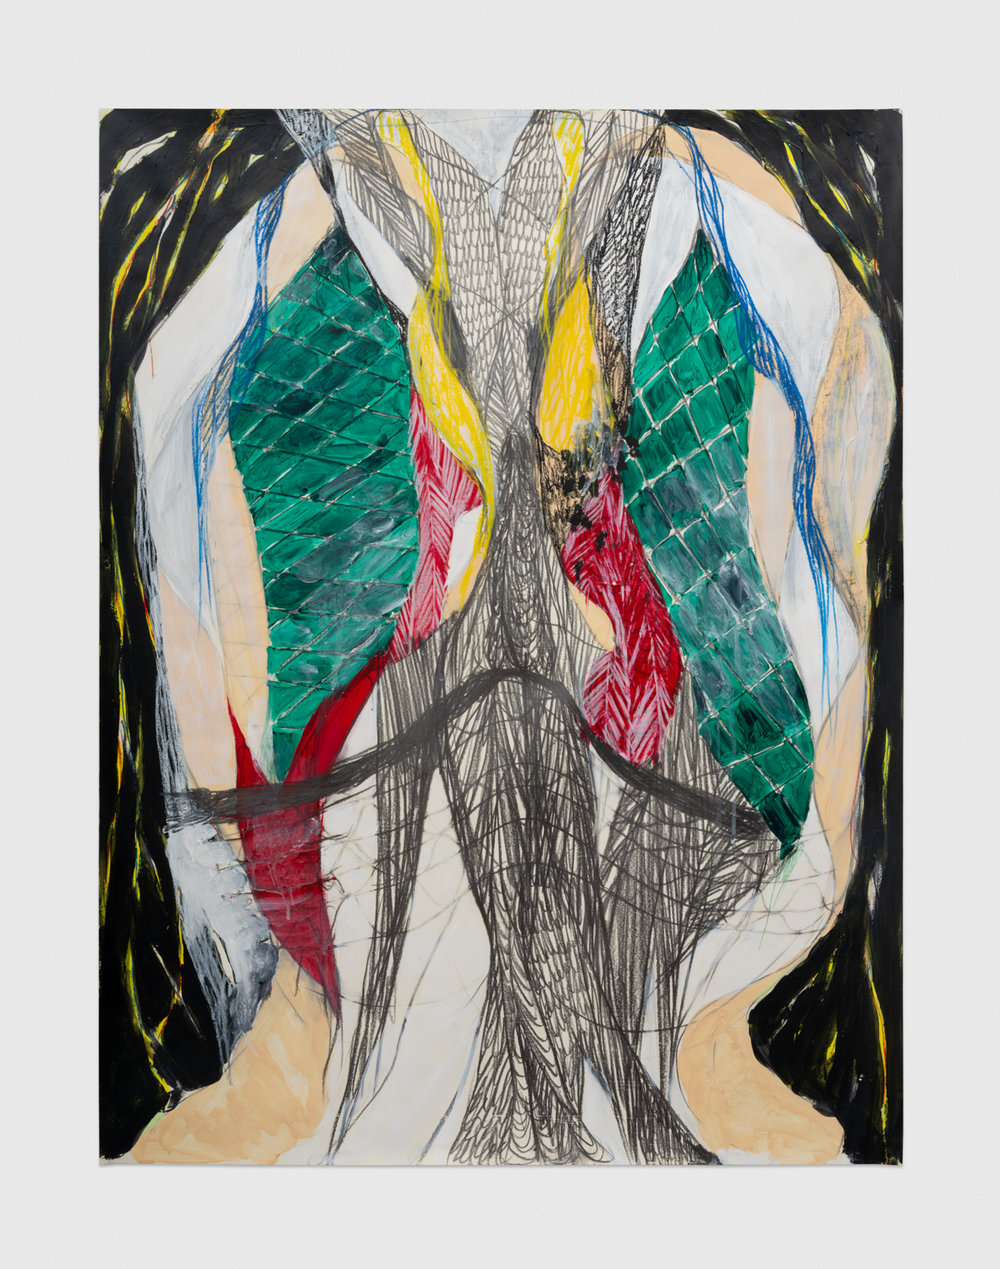 Naotaka Hiro Untitled (Fishnet), 2018 Acrylic, graphite and grease pencil on paper 42h x 32w in NaoH018